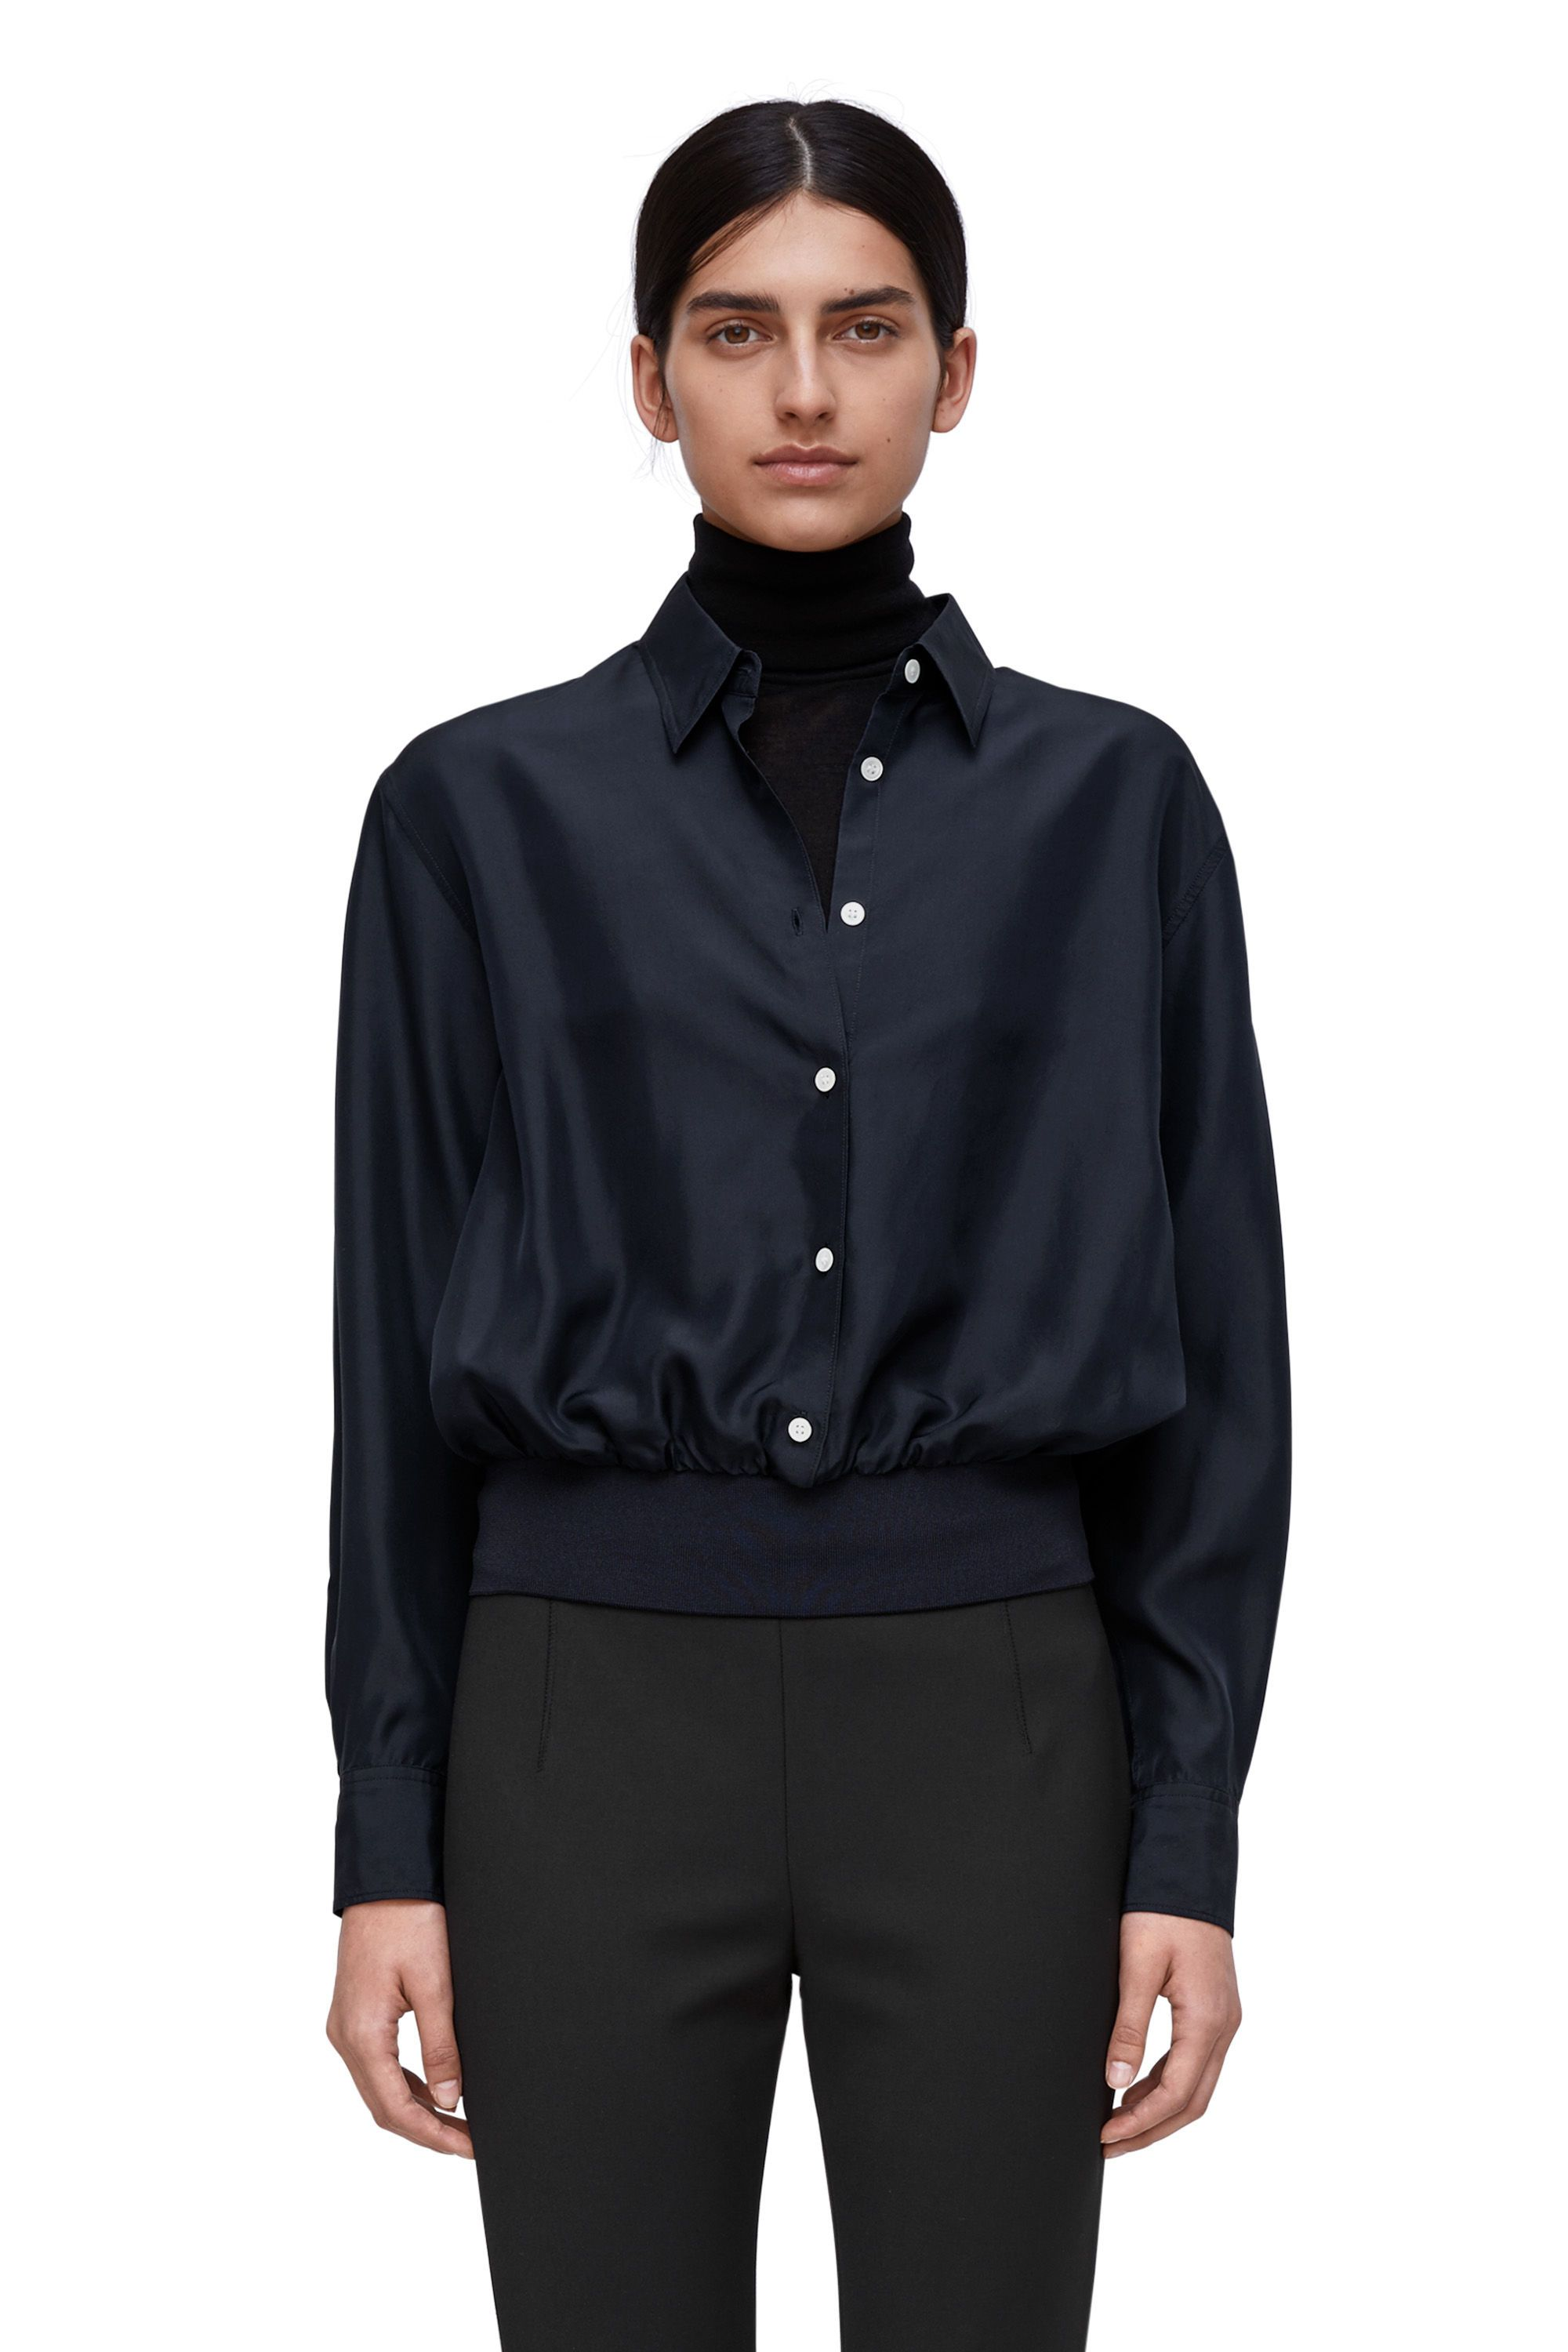 539e4b94 silk blouse Arket 99 medium reduction with email sign up Navy Blue Shirts,  Dark Navy